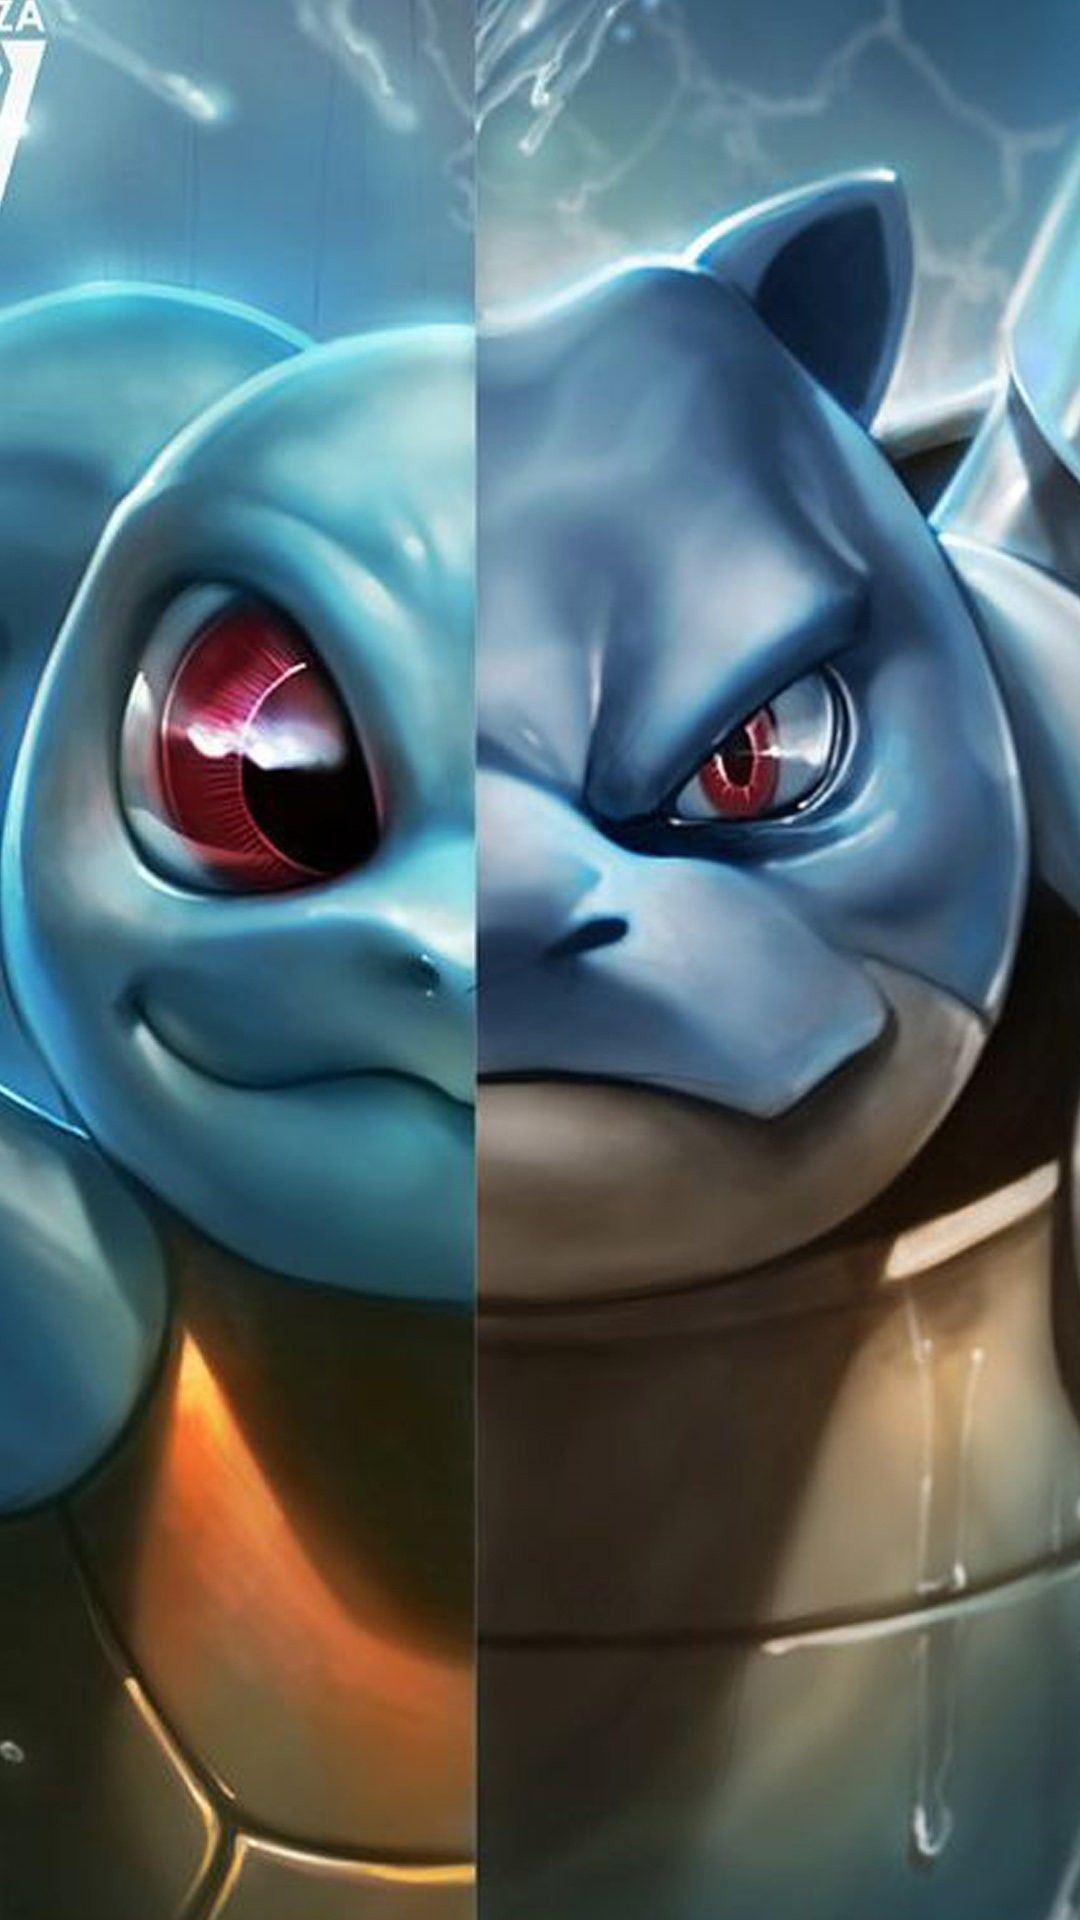 Pokemon GO HD Wallpapers for iPhone 7 | Wallpapers.Pictures